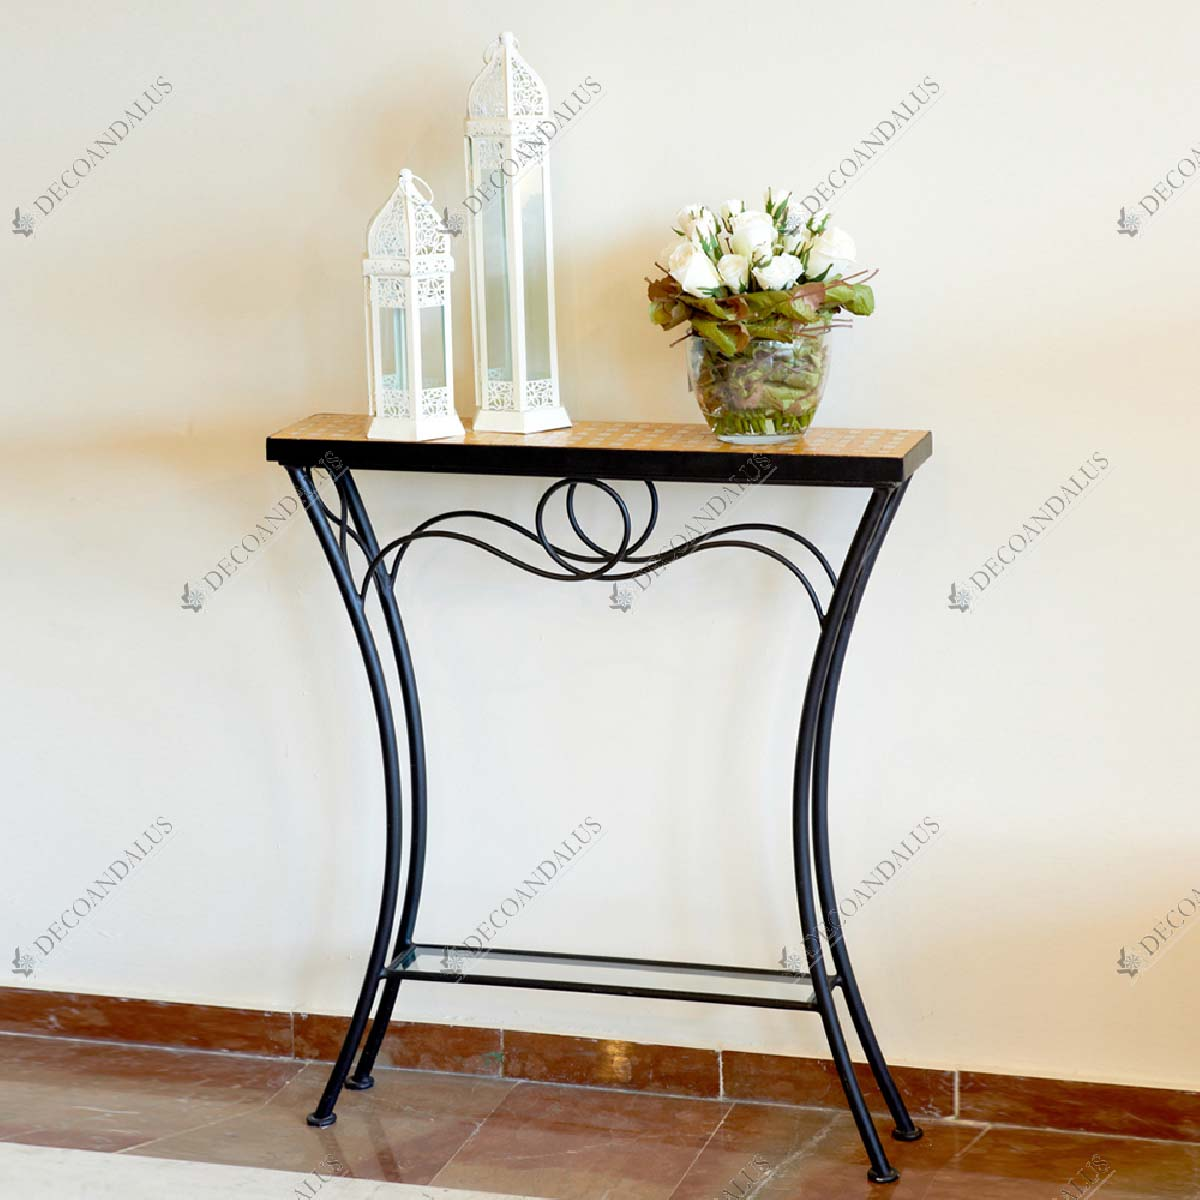 Wrought Iron Glass and Mosaic Console Table 24.40